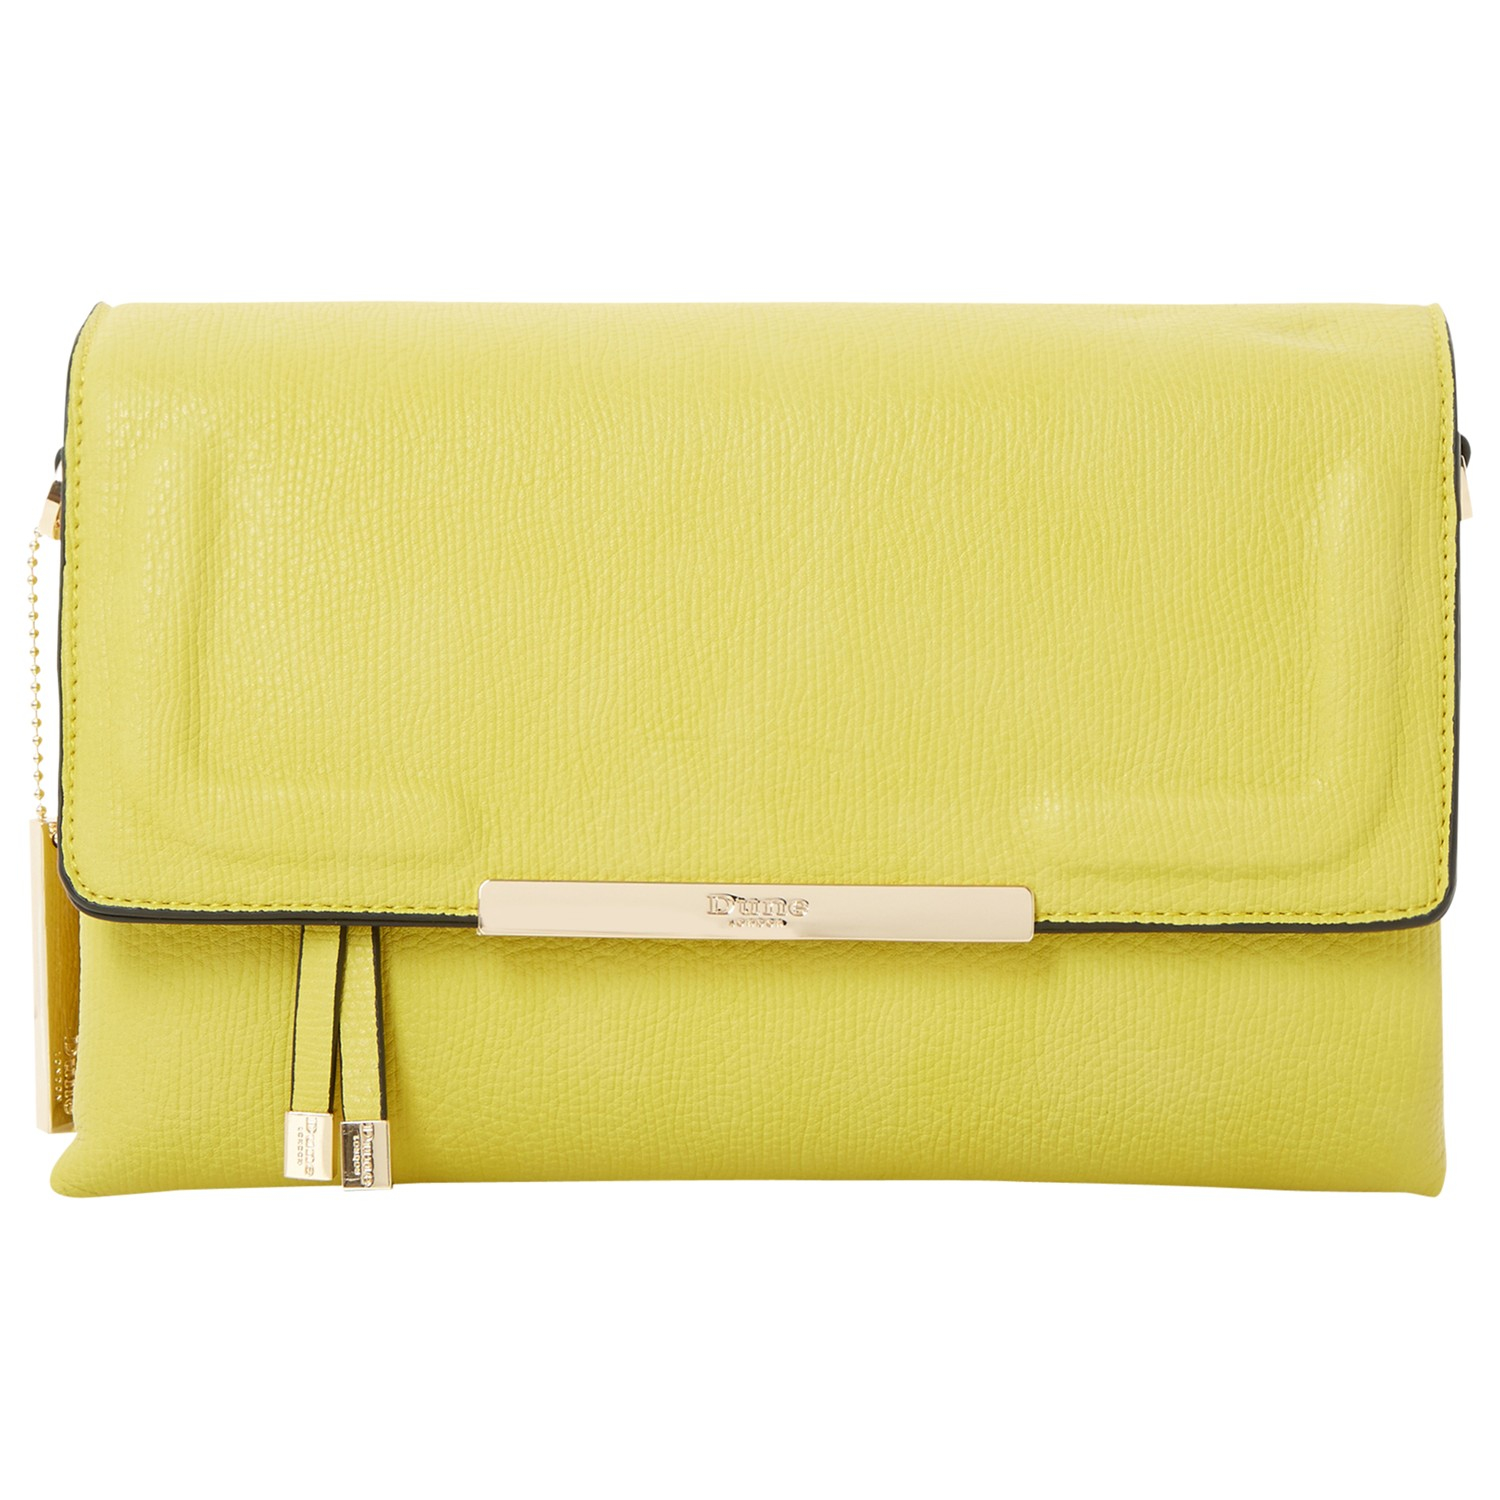 e4826807ff6 Dune Emory Flapover Clutch Bag in Yellow - Lyst